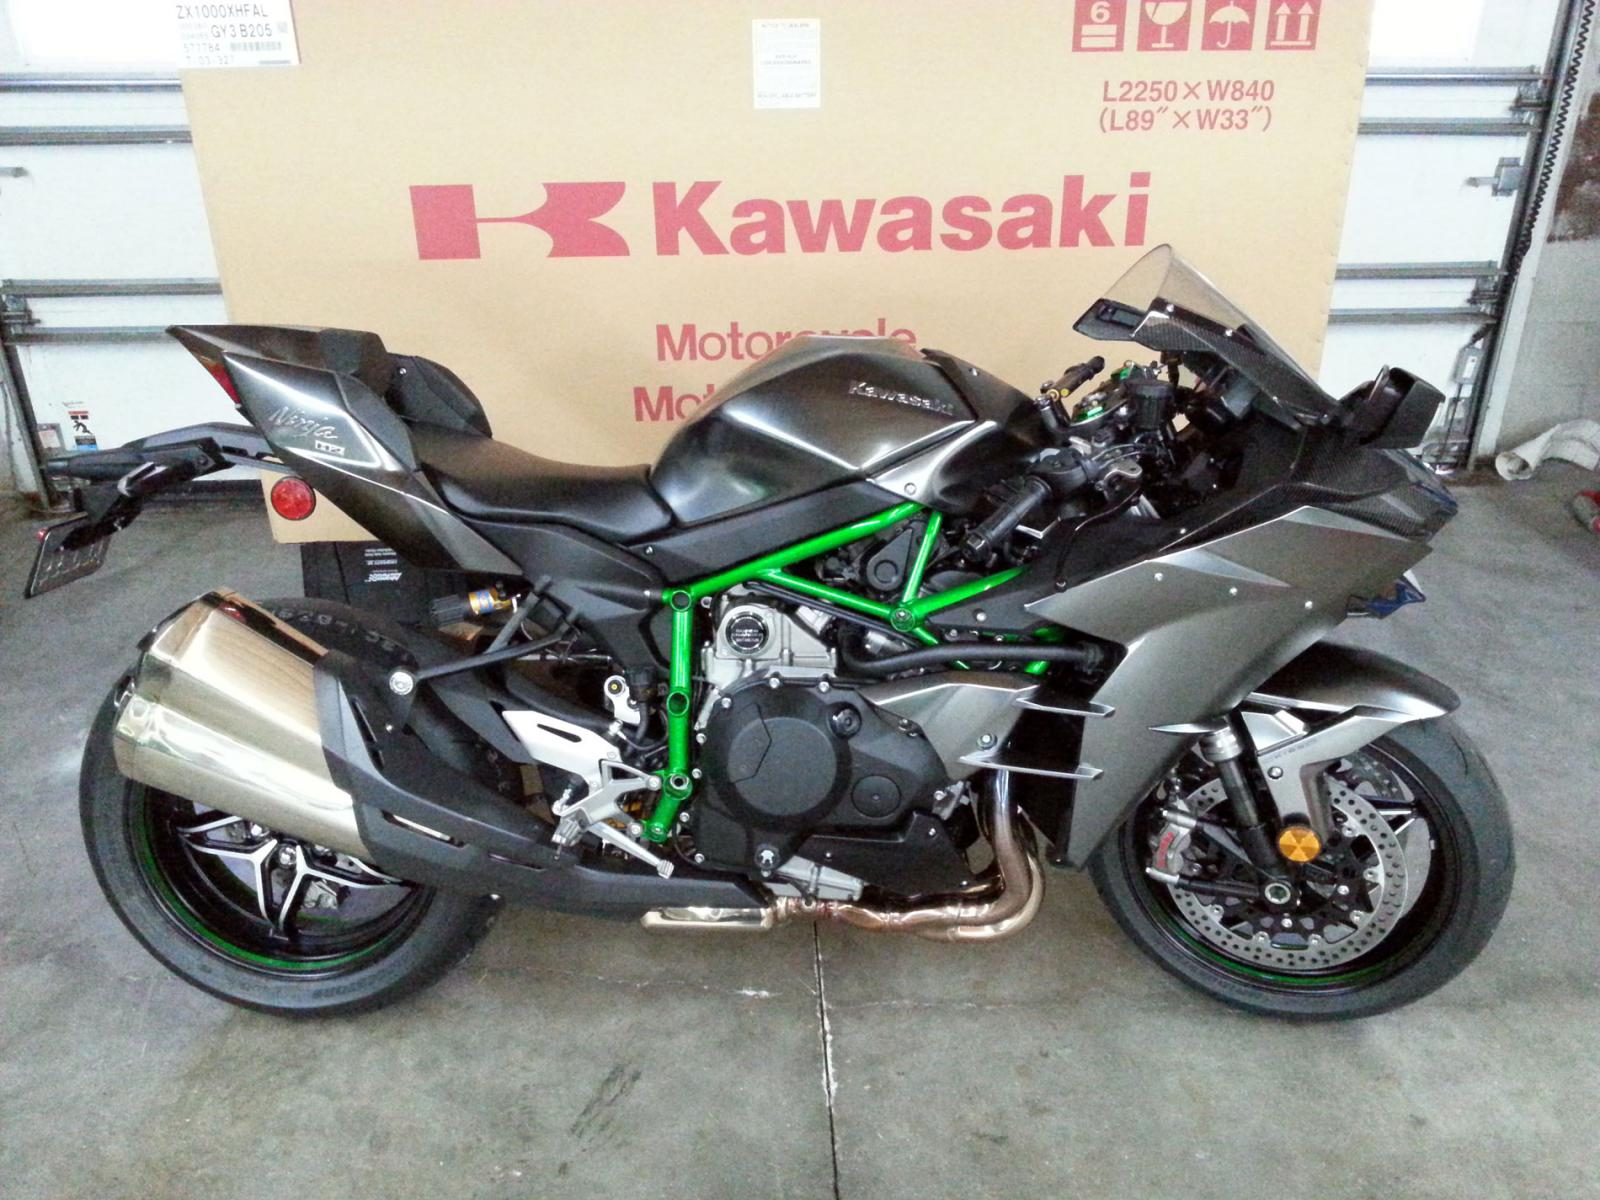 usa - 2017 kawasaki ninja h2 carbon for sale - kawasaki ninja h2 forum